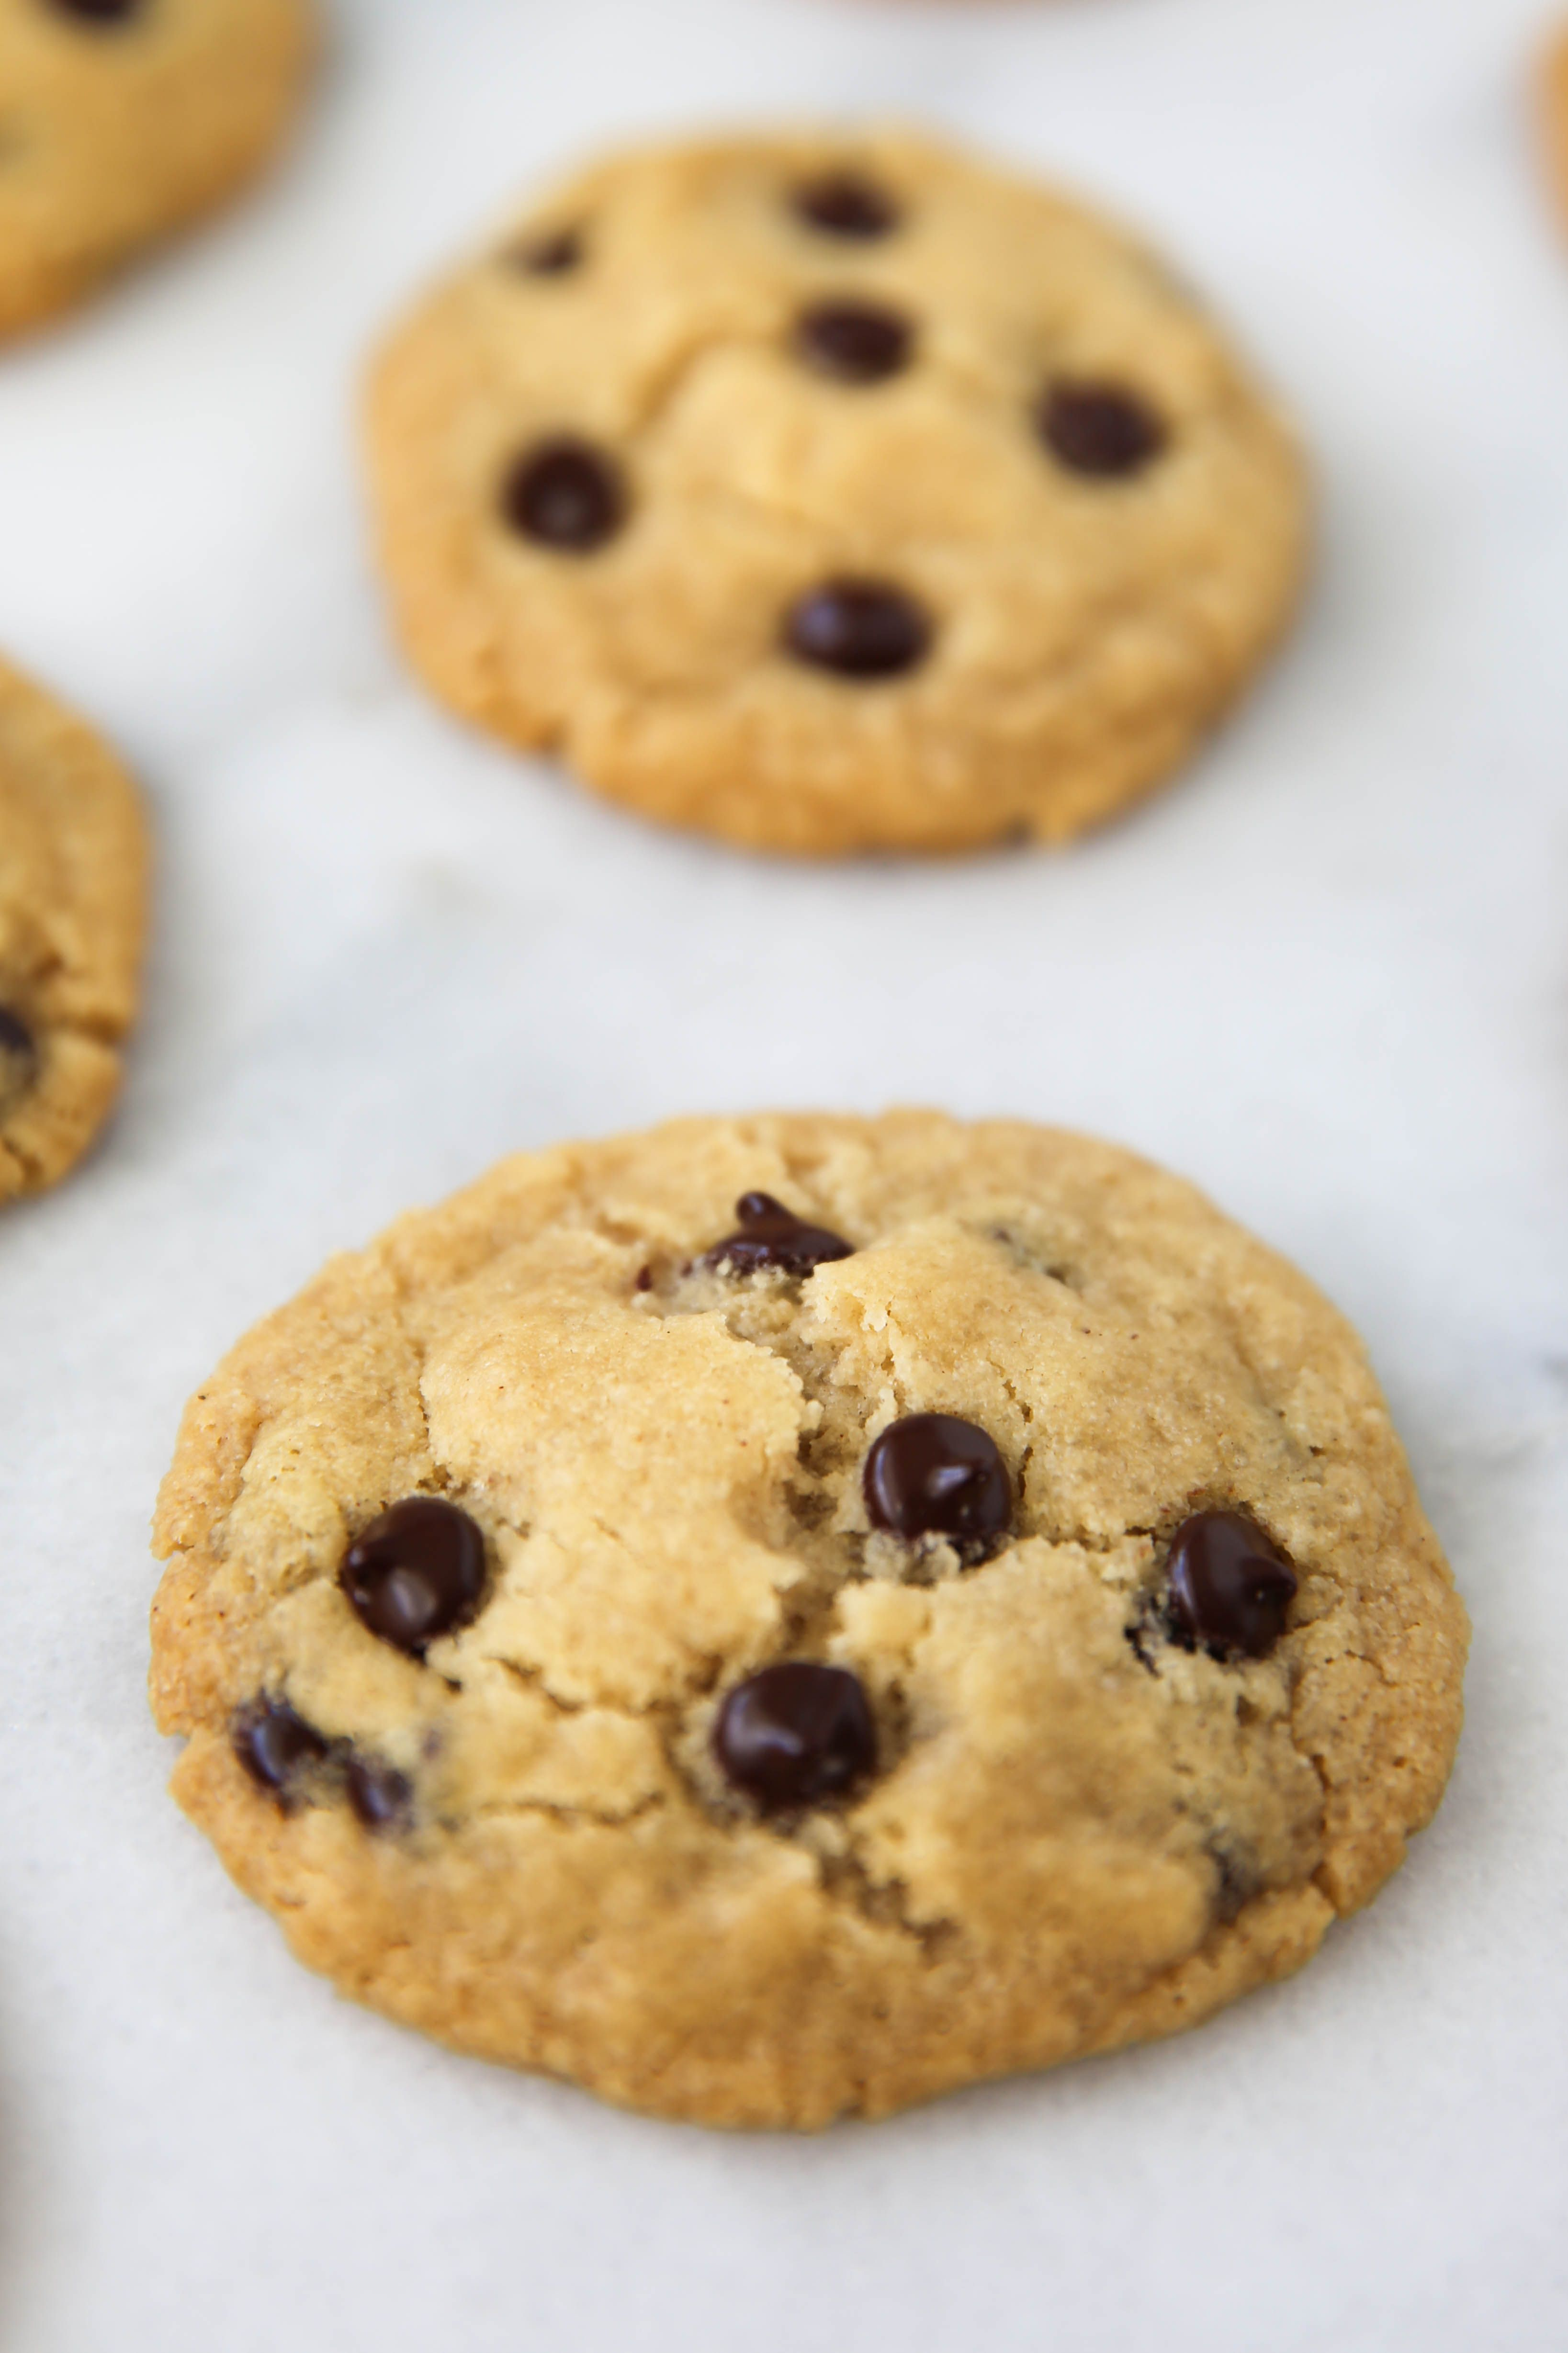 Egg and nut free chocolate chip cookies recipe with